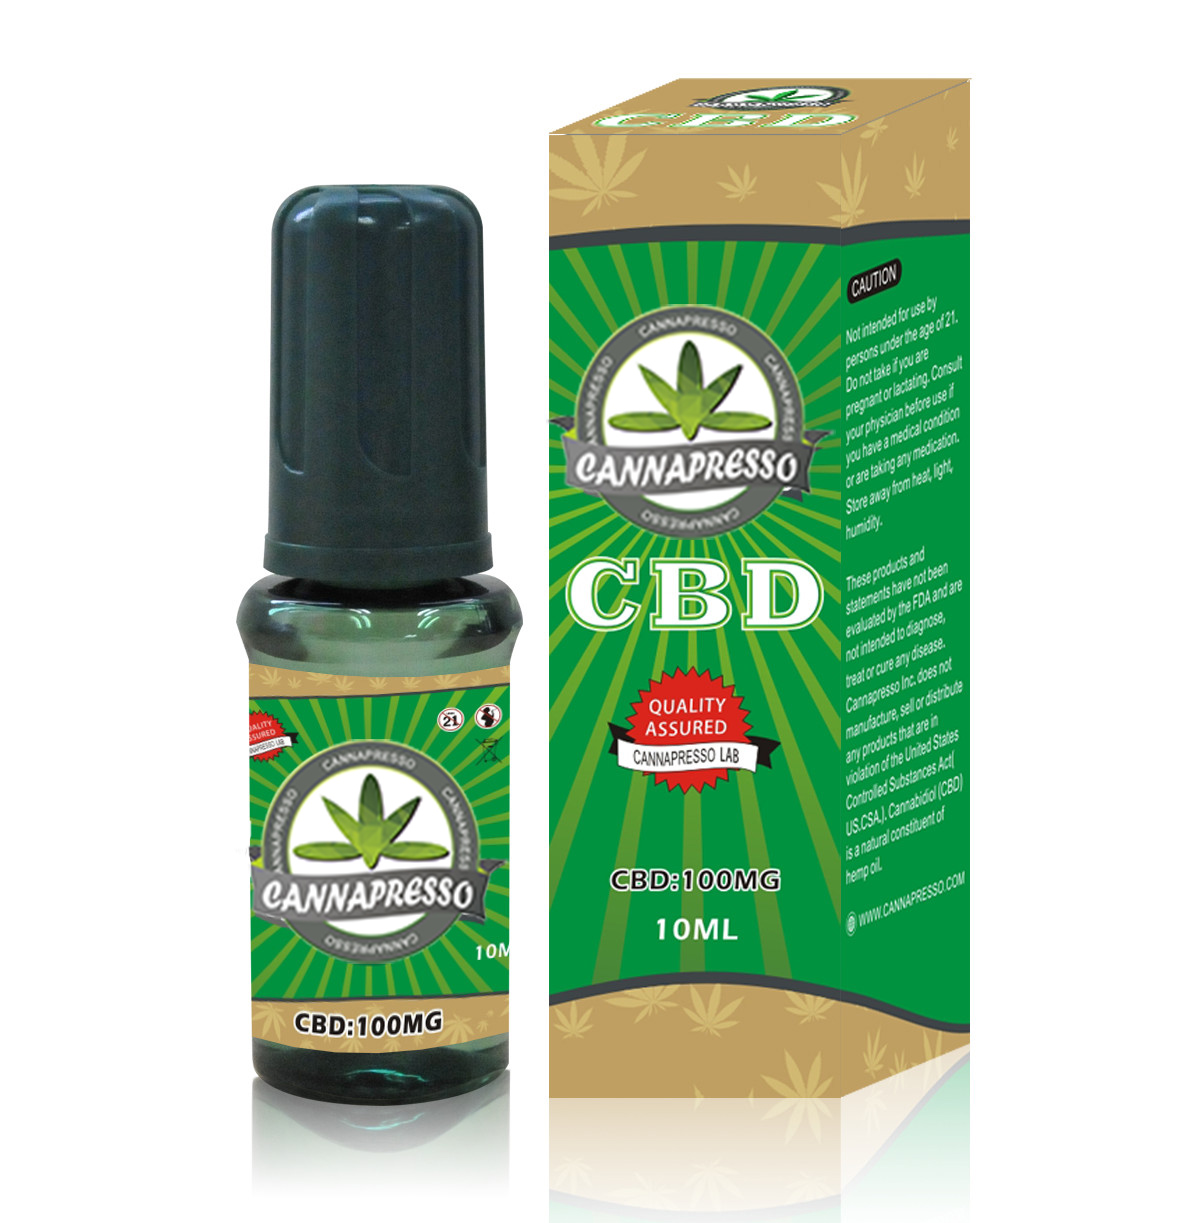 CANNAPRESSO CBD E liquid-100mg CBD 10ml vape oil Featured Image